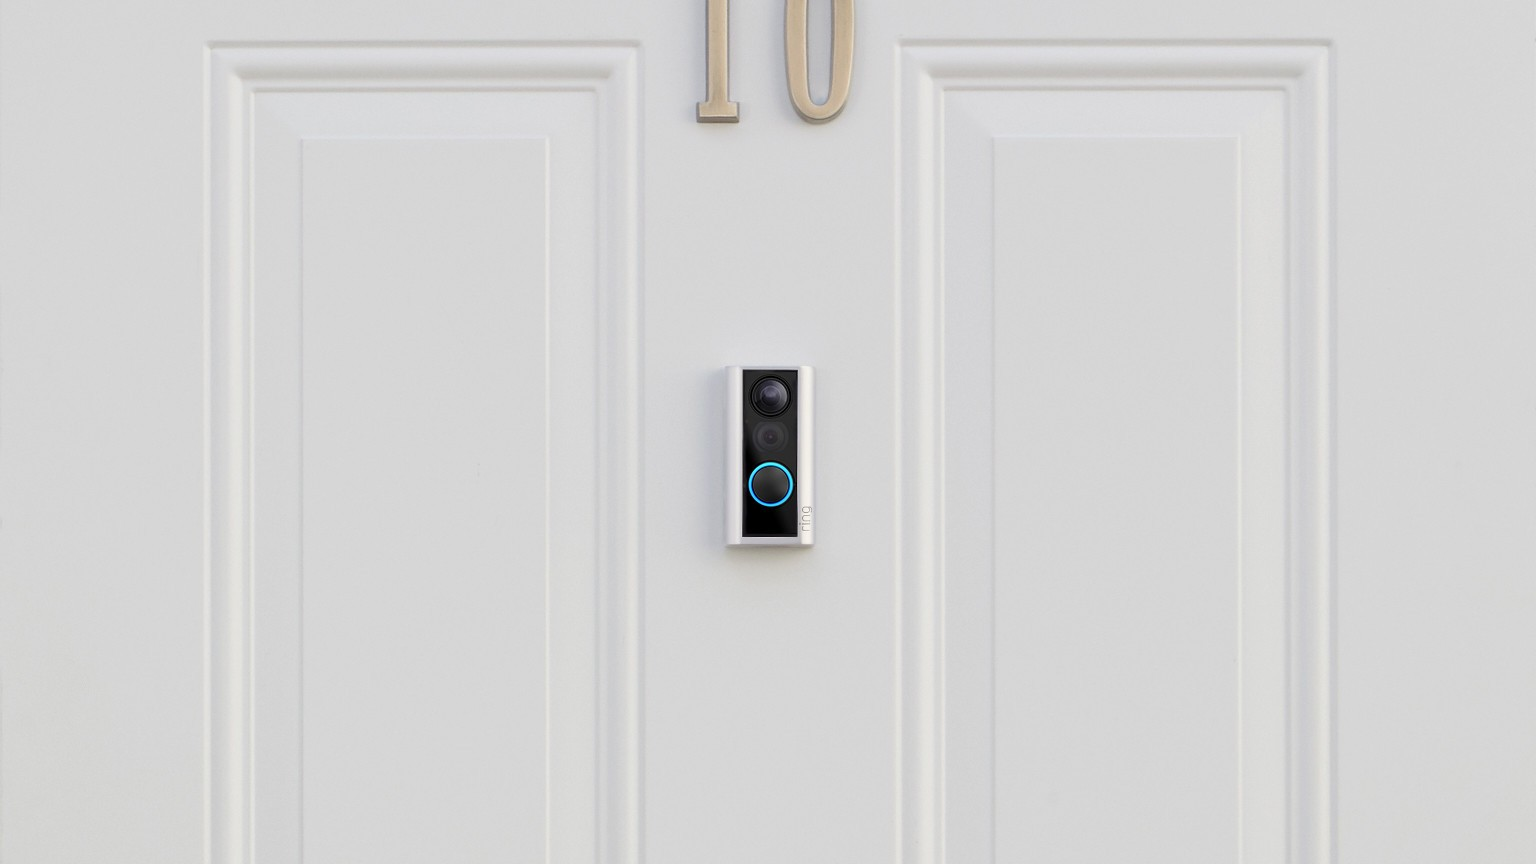 Ring Door View Cam: A New Point of View